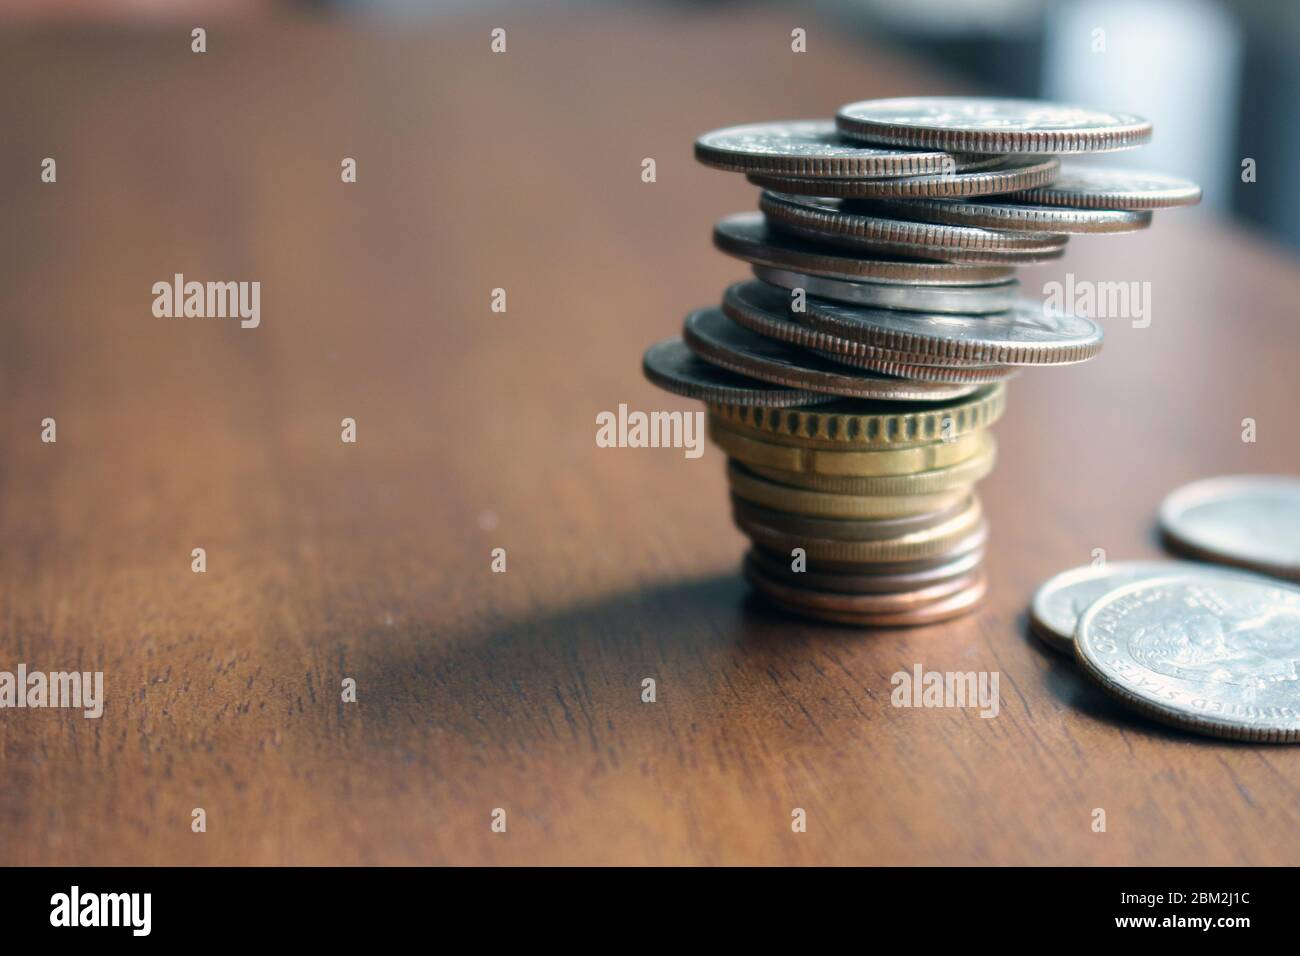 Money - after Covid-19 the imbalance will be general and the global recession is inevitable. Stock Photo